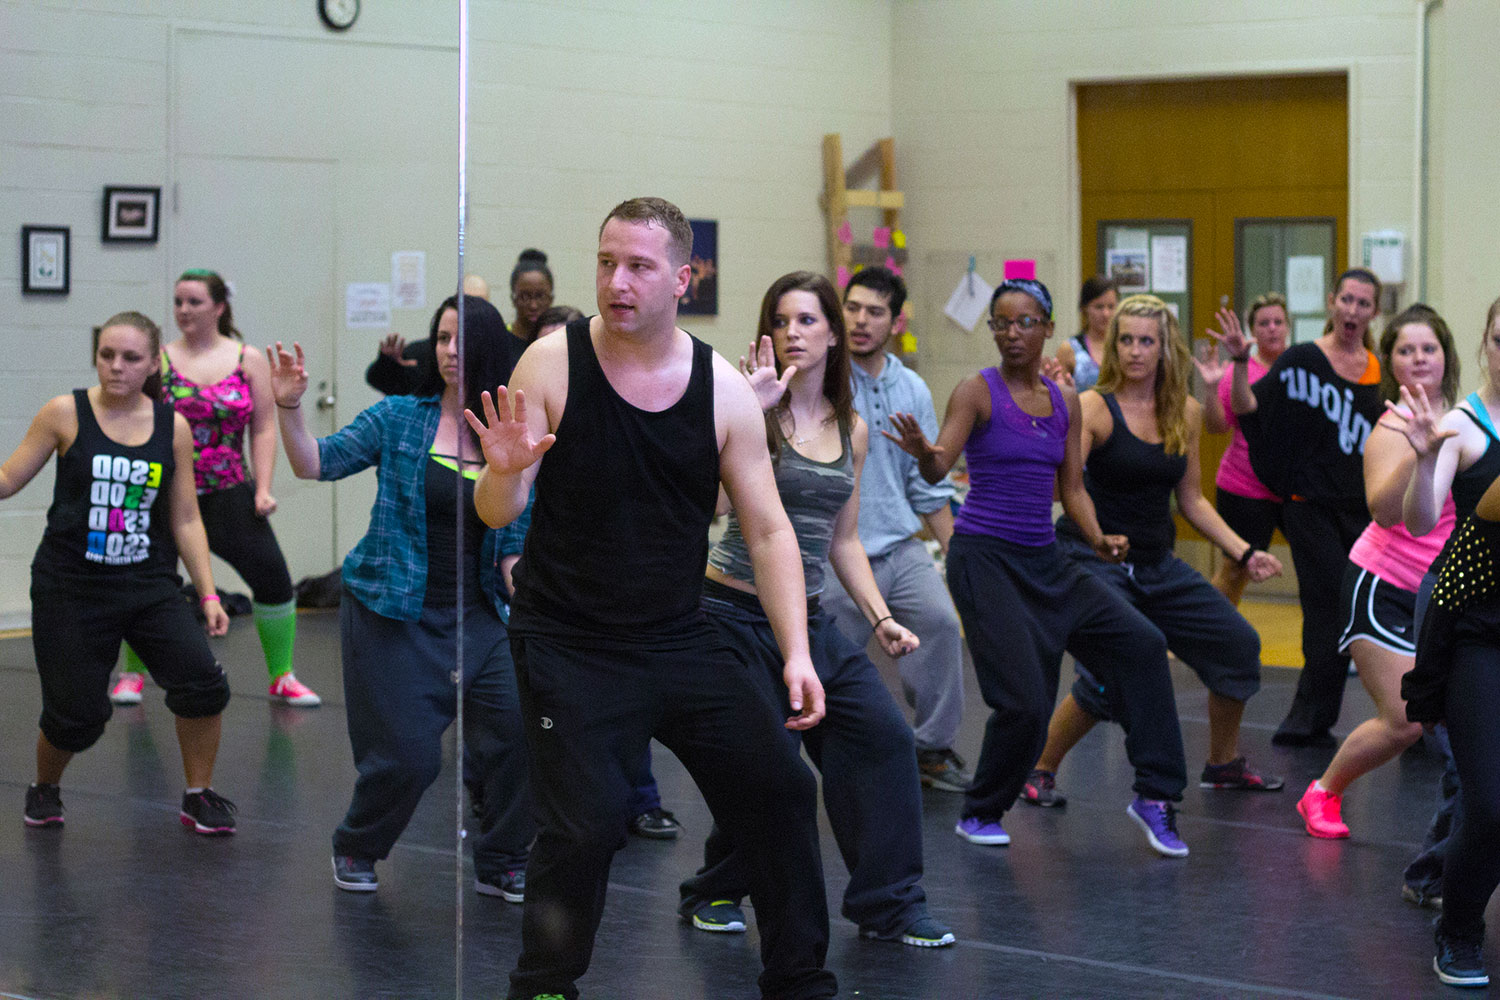 Former TCC student Brandon Mason instructs a week of dance courses where students could sign up for free to learn about hip-hop and ballet. After Mason left TCC, he was successful in New York and Los Angeles. Amy Sleigh, NW associate dance professor, said Mason was one of the first to return to NW as an alumnus during the 15 years of the NW dance program.  Photo by Yesenia Santillan/The Collegian